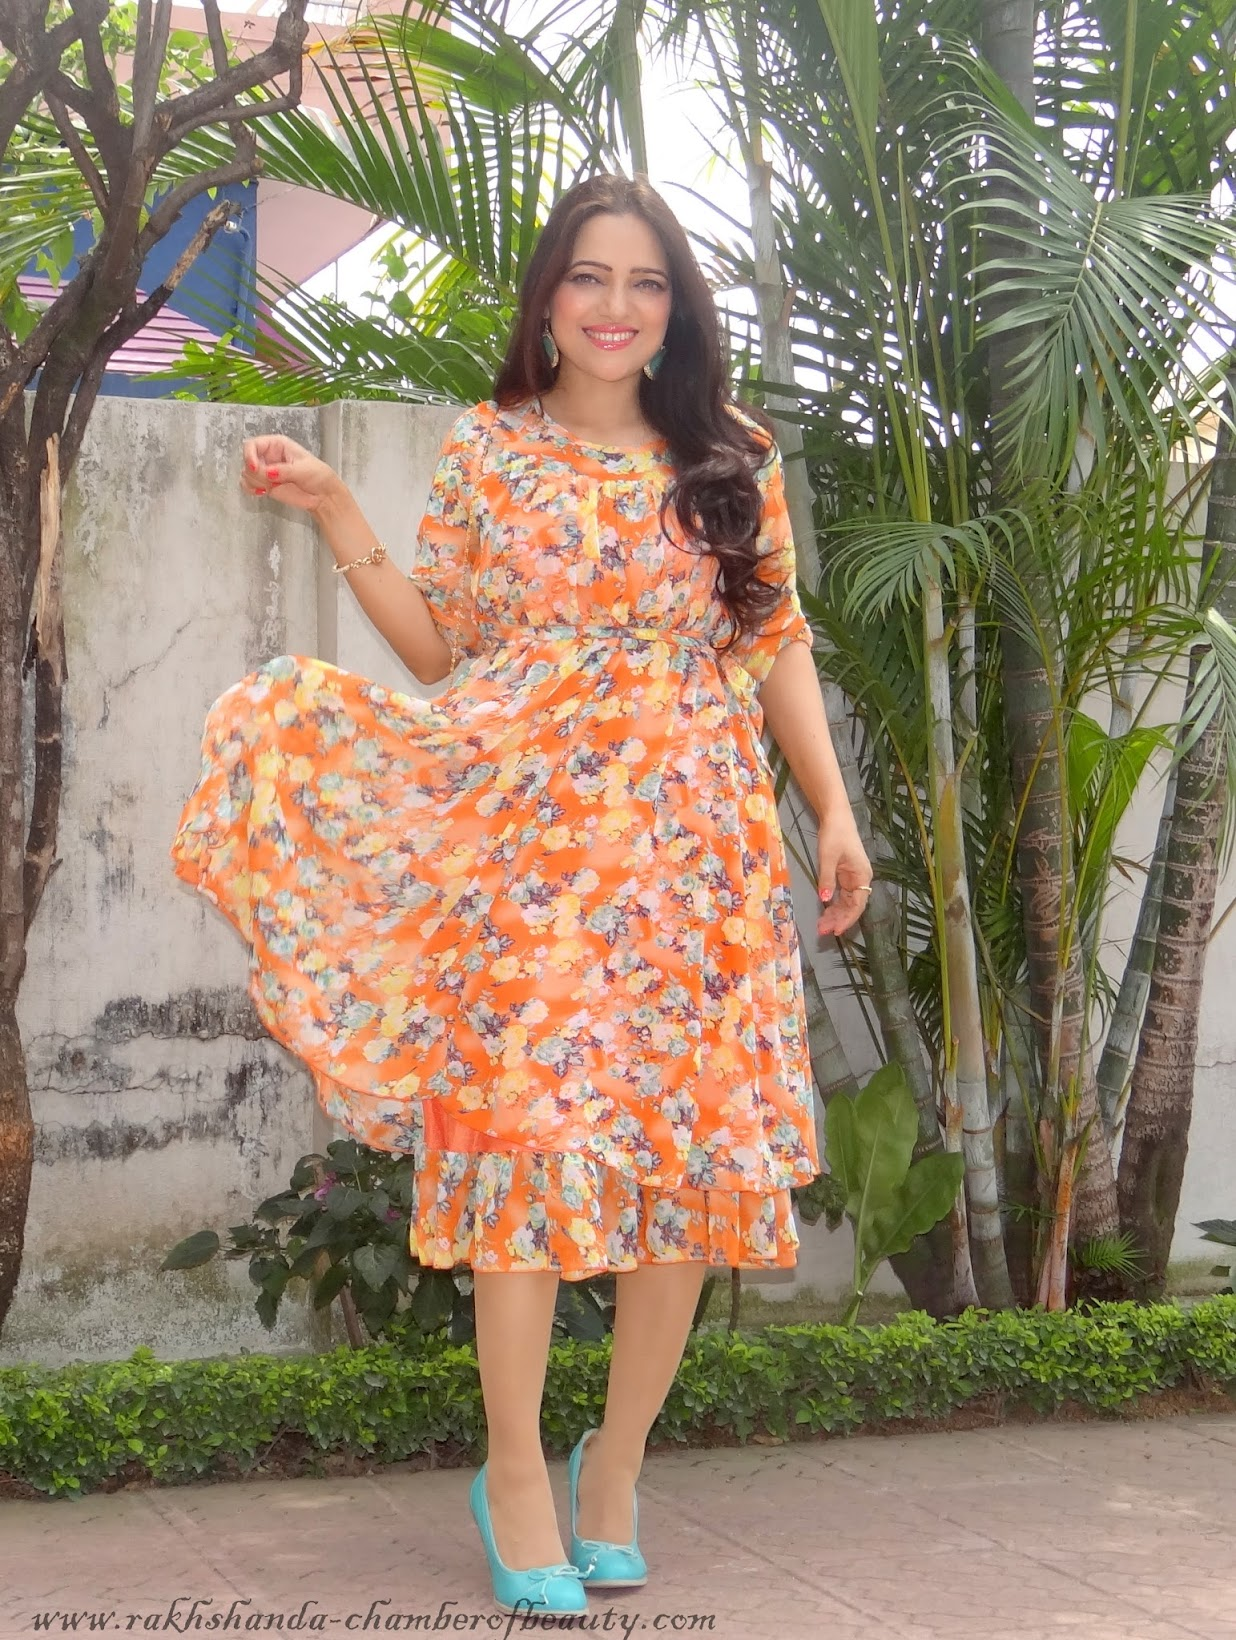 Floral Tangerine- OOTD | How to style a floral dress in summers, wsdear.com, OOTD, Indian fashion blogger, Chamber of Beauty